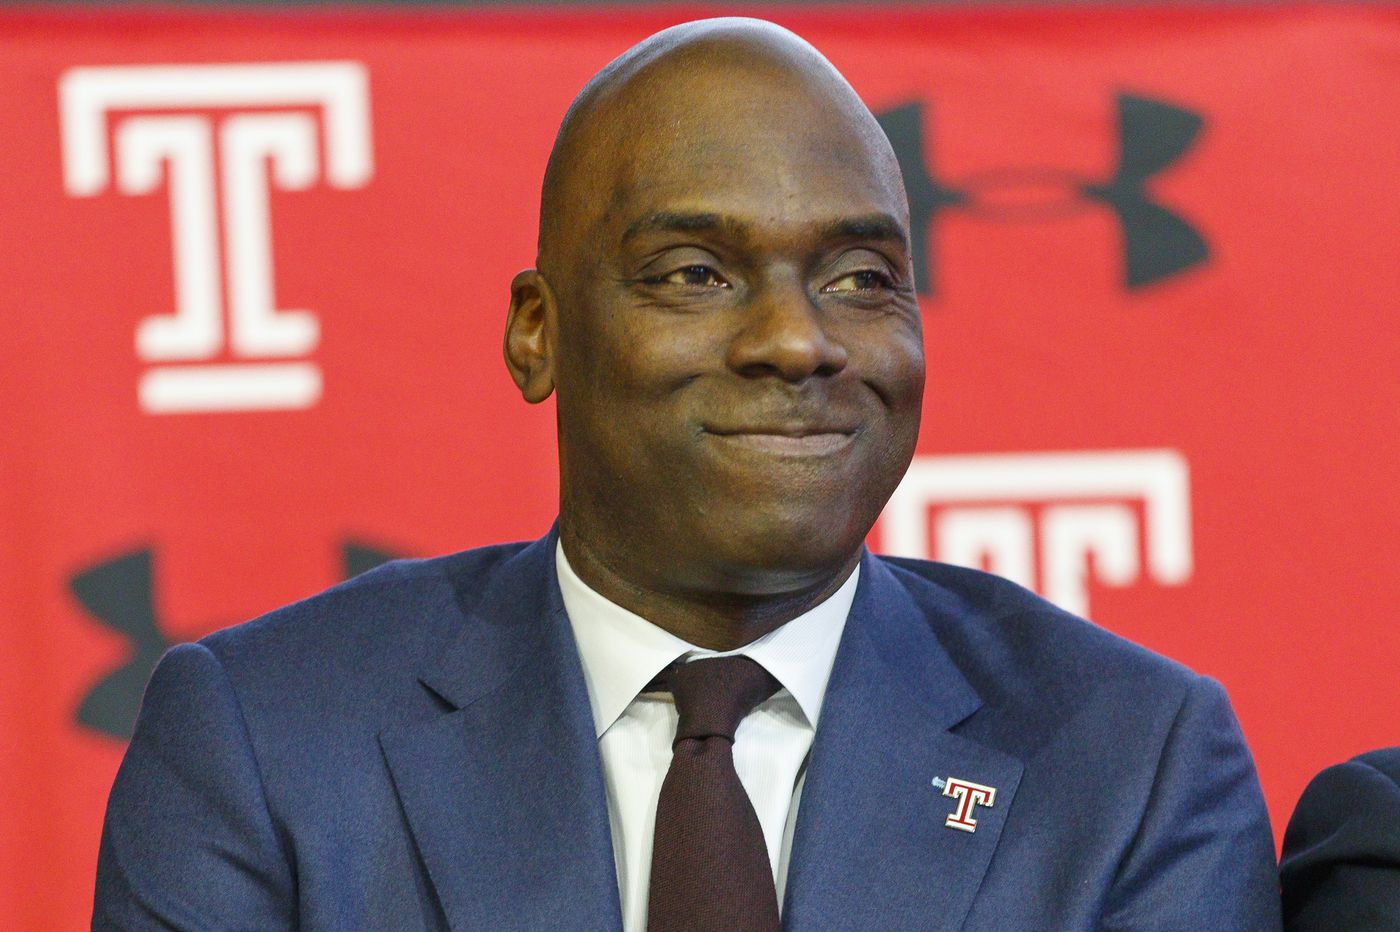 New Temple basketball coach Aaron McKie's nonconference schedule announced